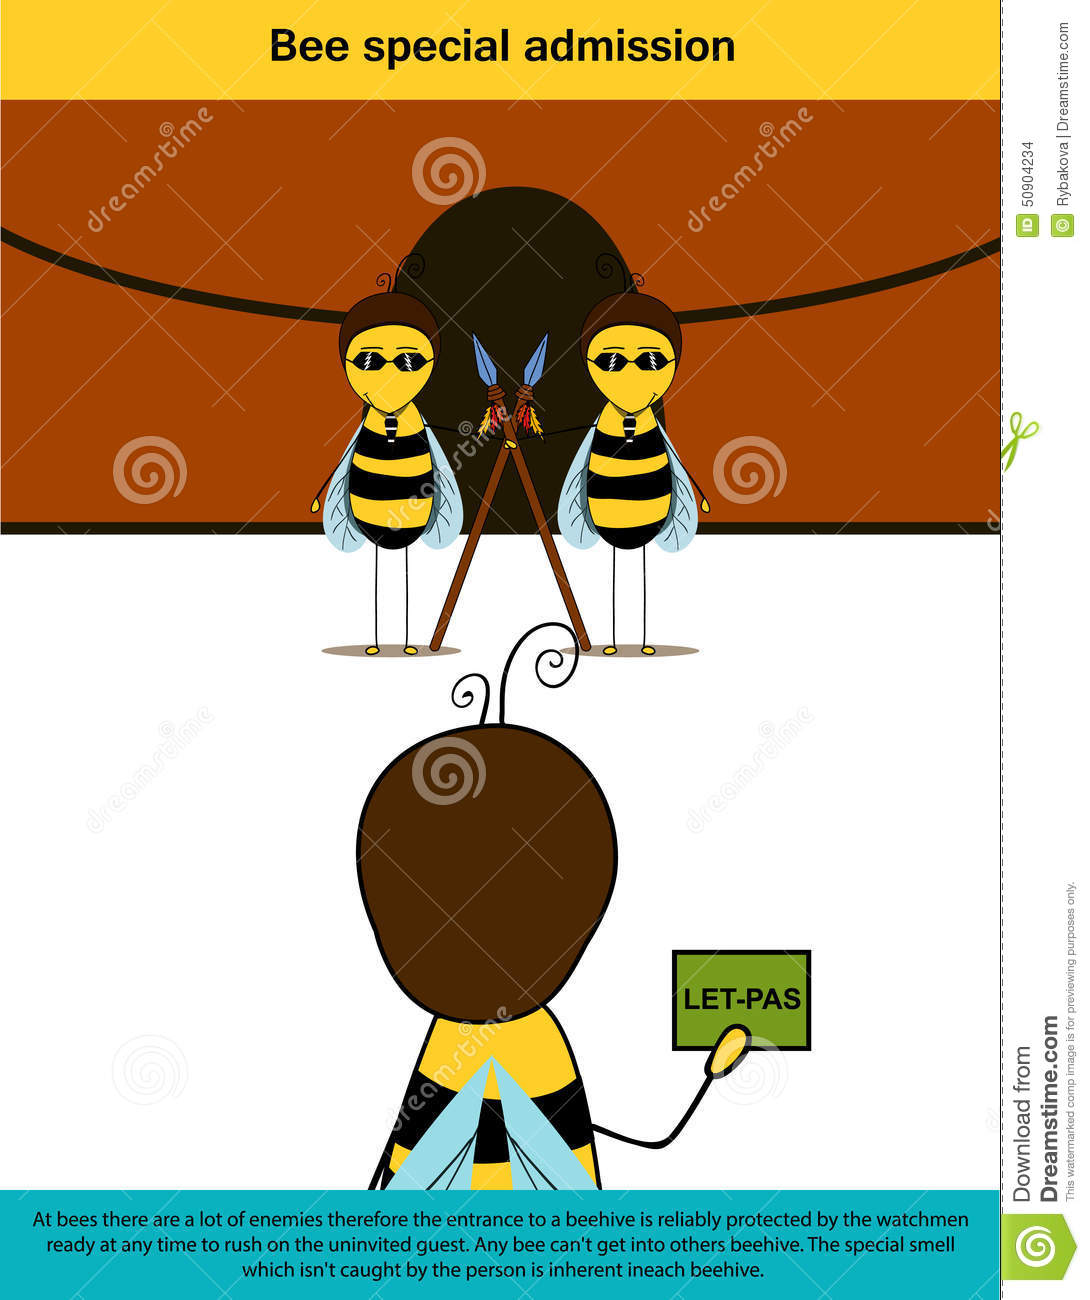 Bee infographics admission stock illustration illustration of download bee infographics admission stock illustration illustration of liquid diagram 50904234 ccuart Images